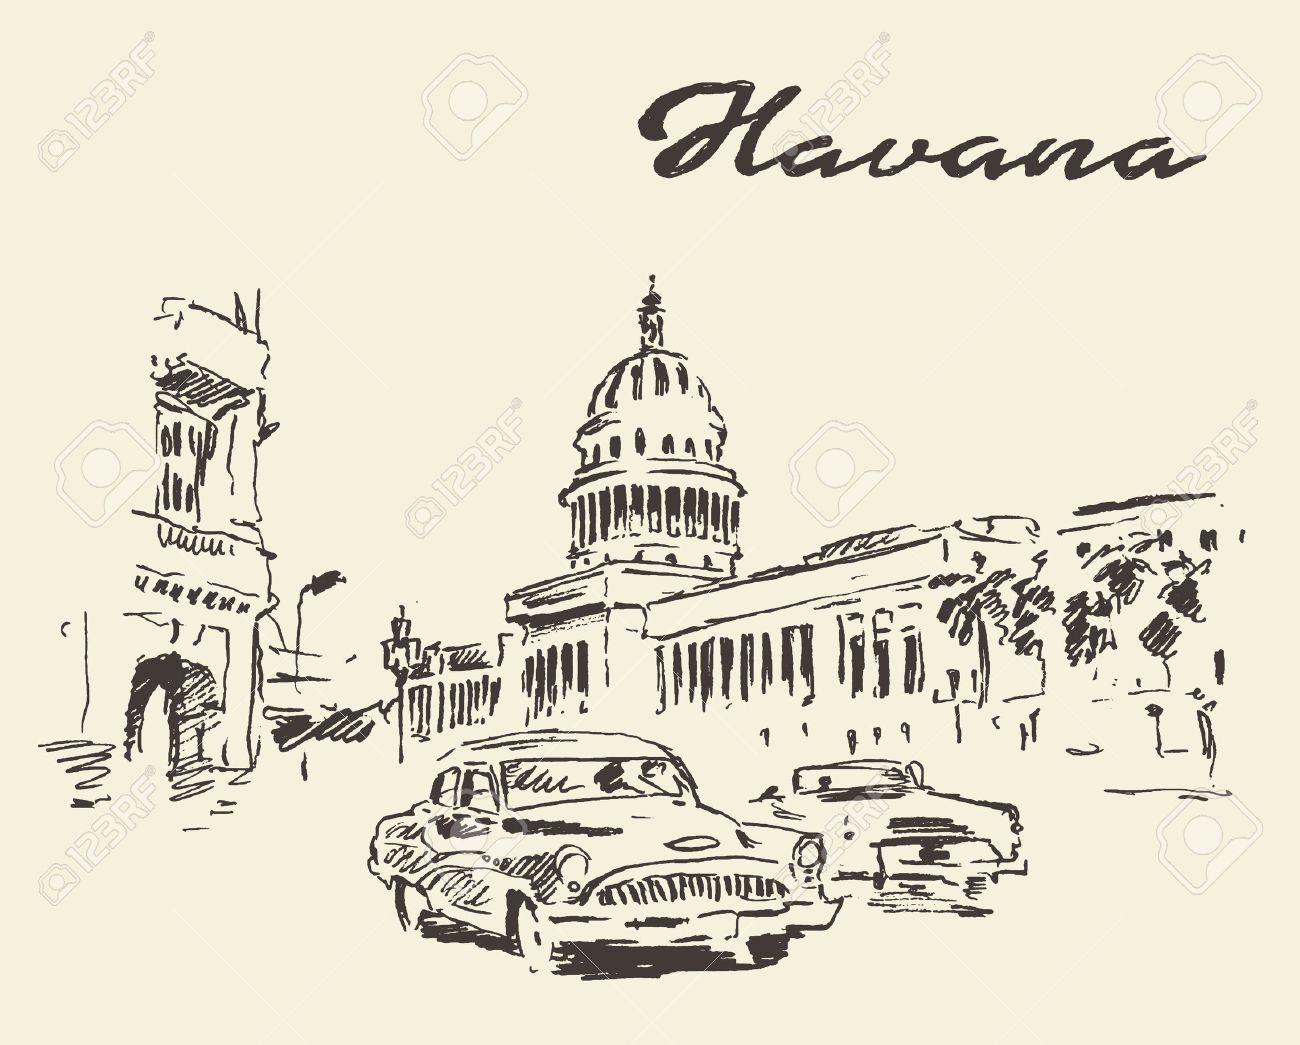 Streets Of Havana With Old Cars Vintage Engraved Illustration ...